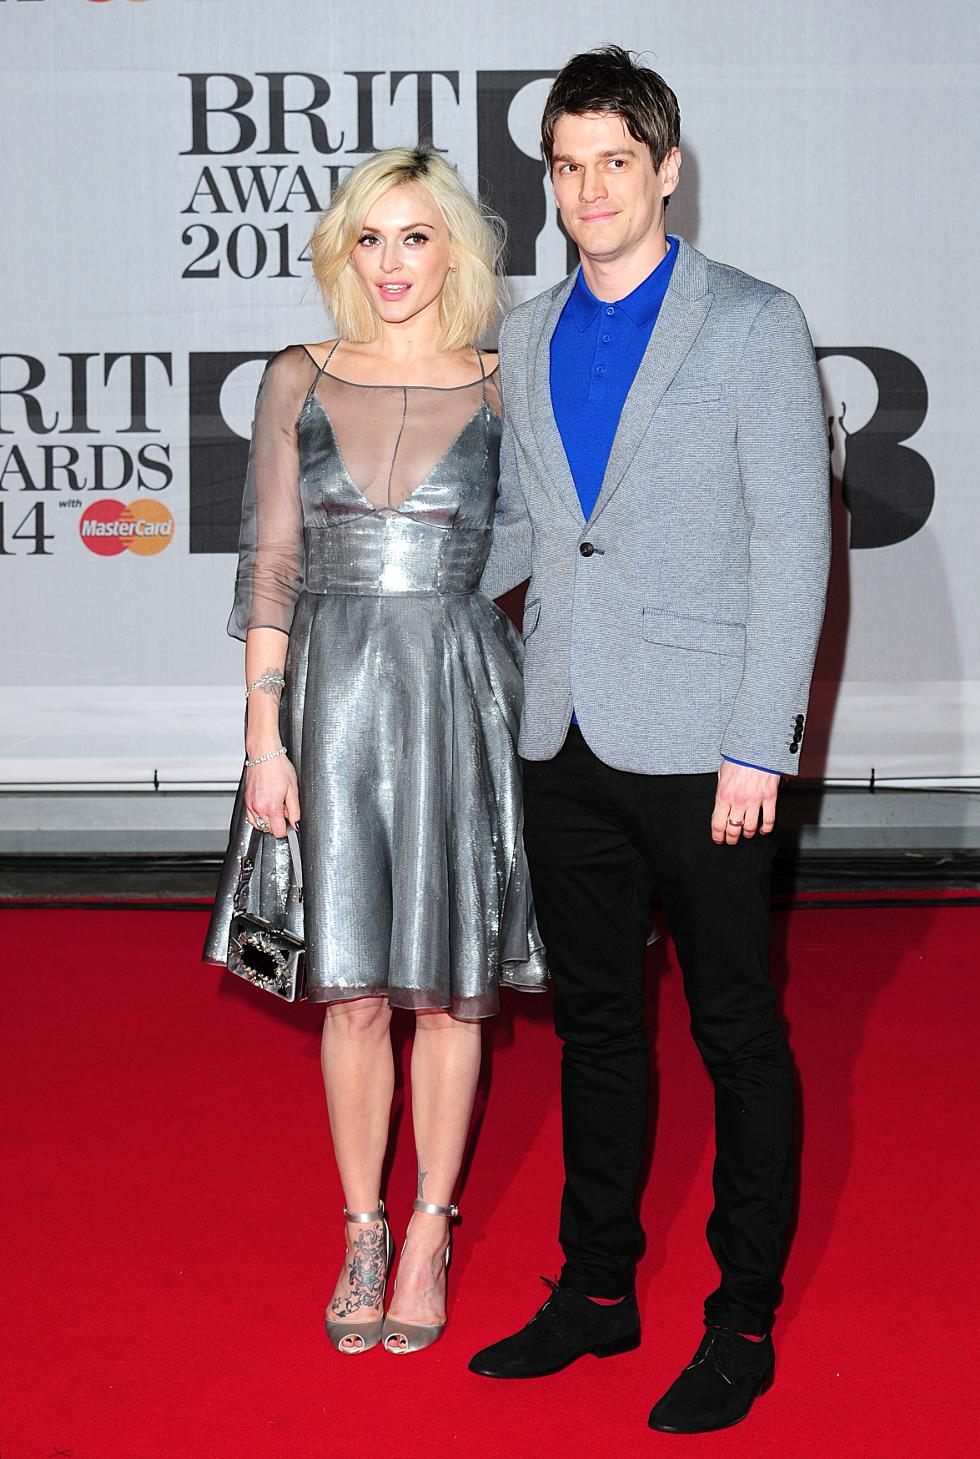 gallery_music-brit-awards-2014-fearne-cotton-jesse-wood.jpg